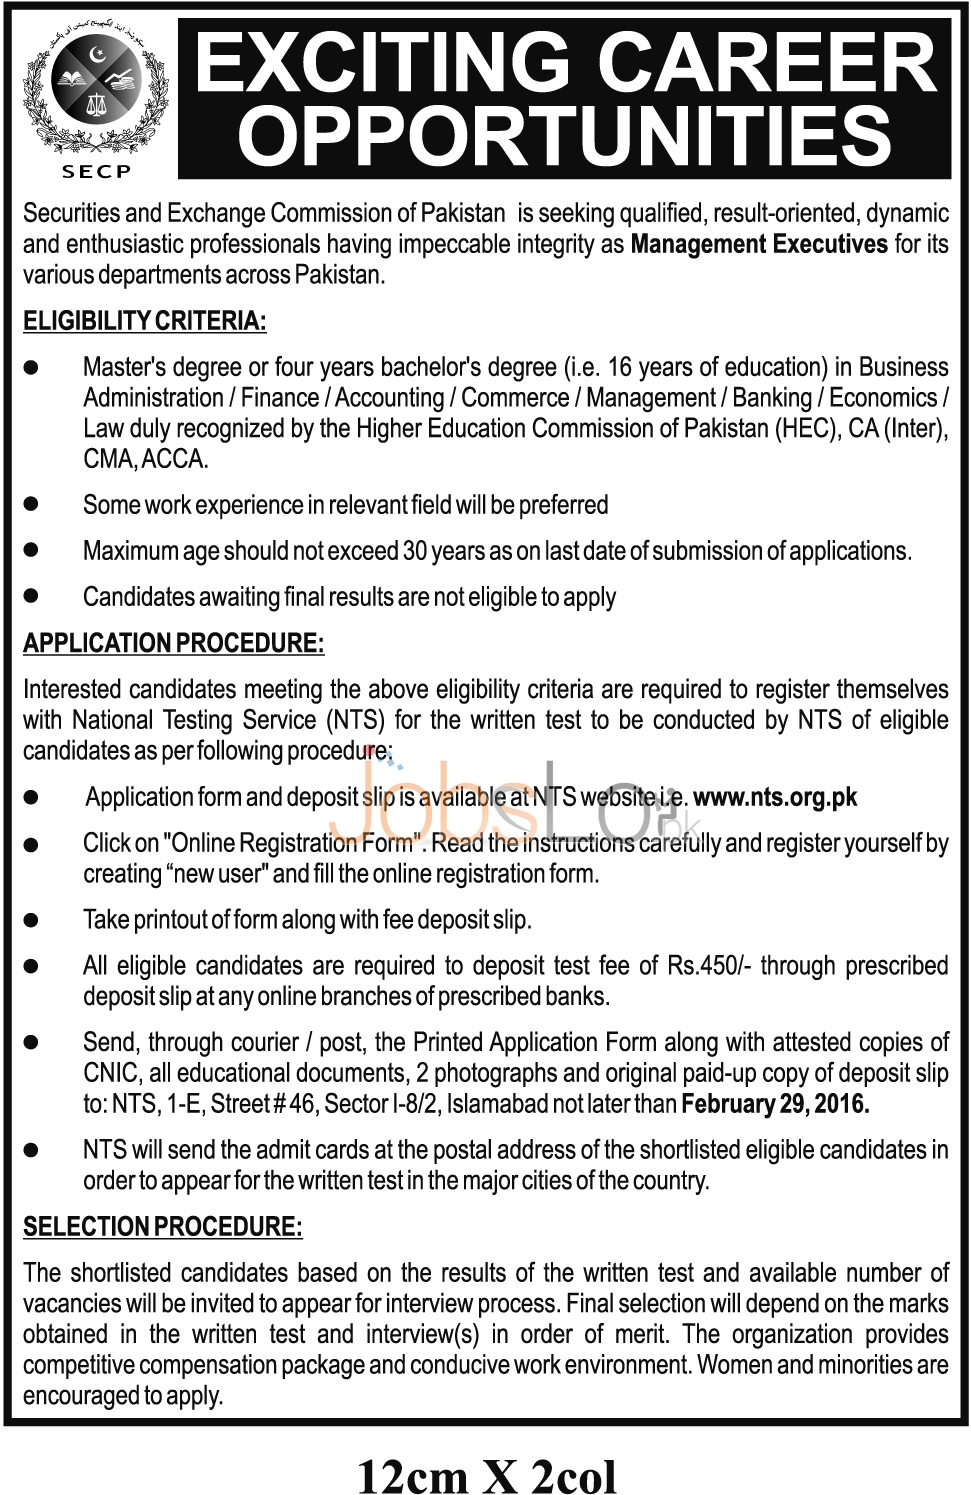 Situations Vacant in Security & Exchnage Commission of Pakistan February 2016 NTS Latest Advertisement